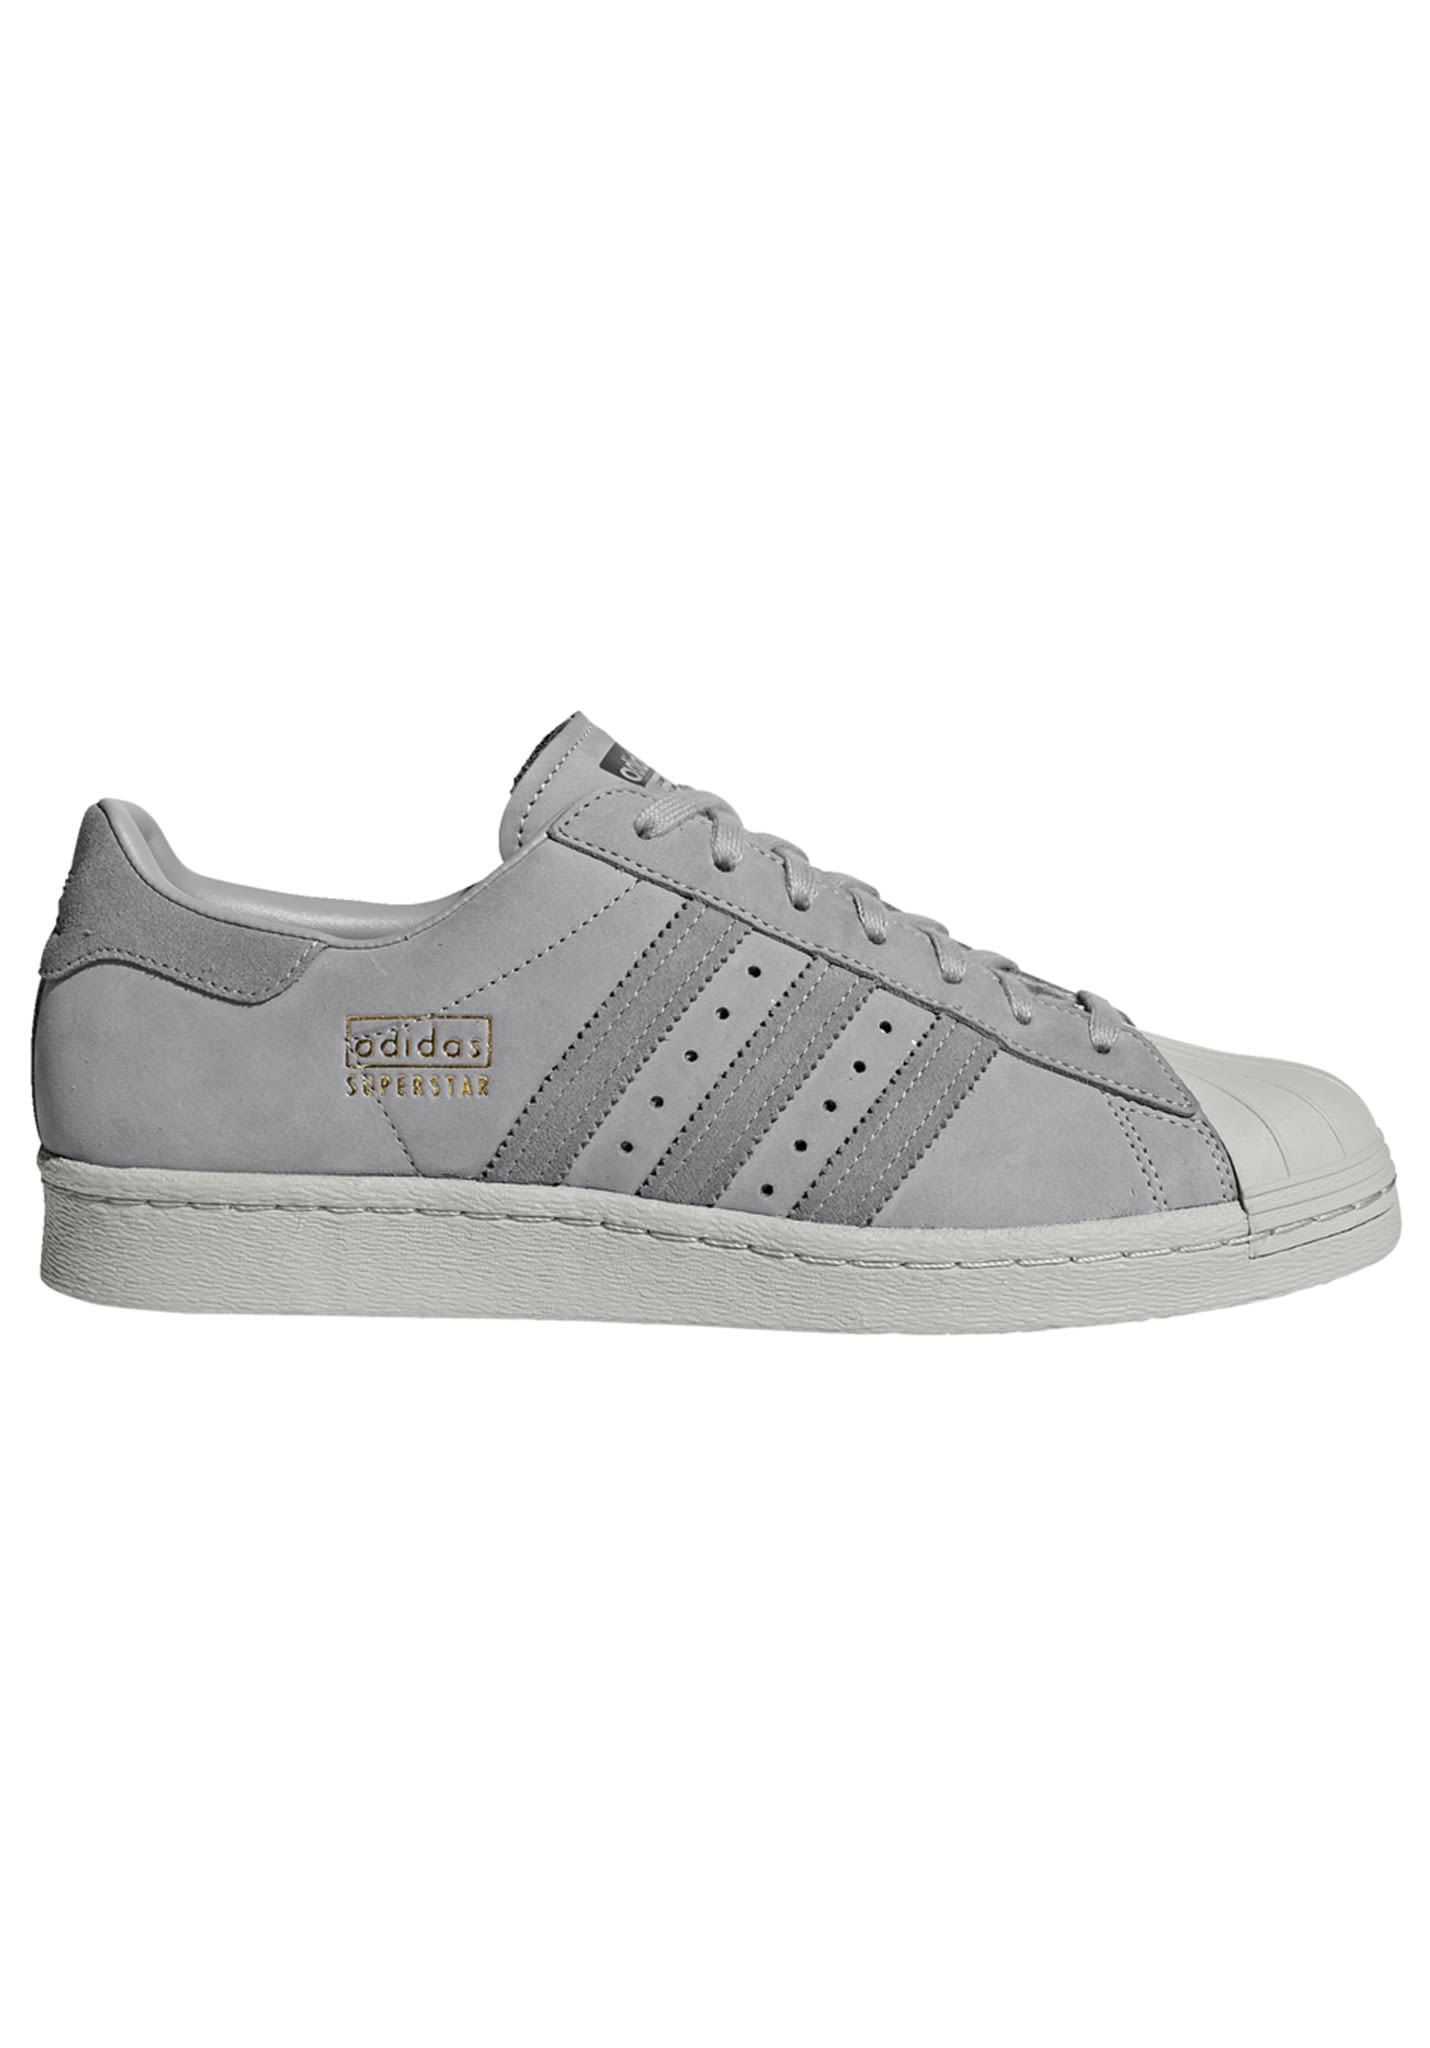 new arrival a8bf3 48050 ADIDAS ORIGINALS Superstar 80S - Sneakers - Grey